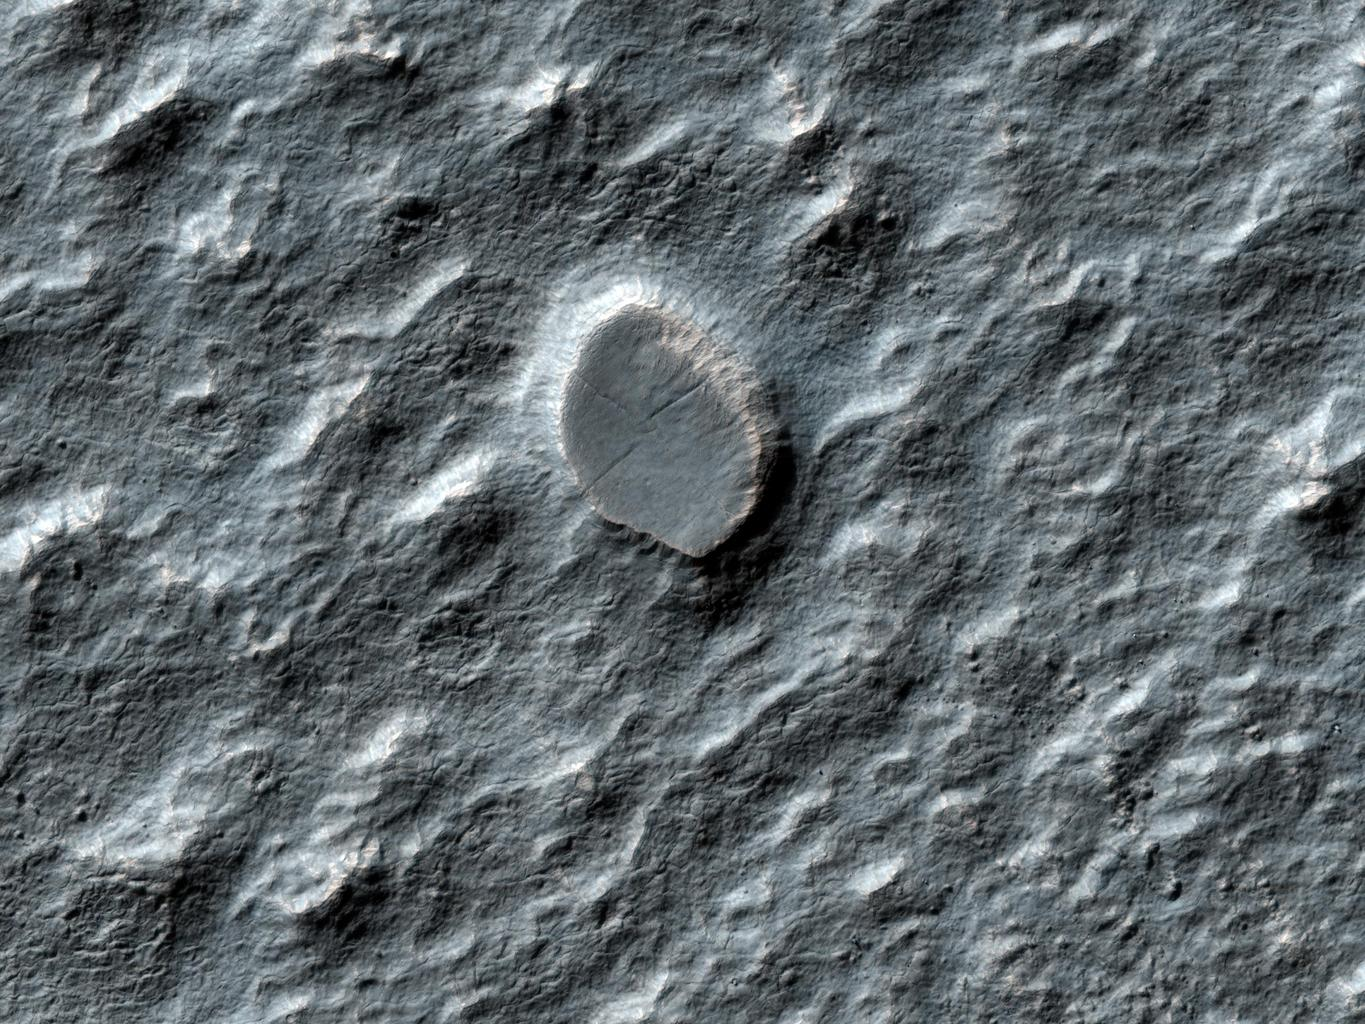 This image from NASA's Mars Reconnaissance Orbiter shows a swath of a debris apron east of Hellas Basin. Features like this are often found surrounding isolated mountains in this area. Original release date March 3, 2010.